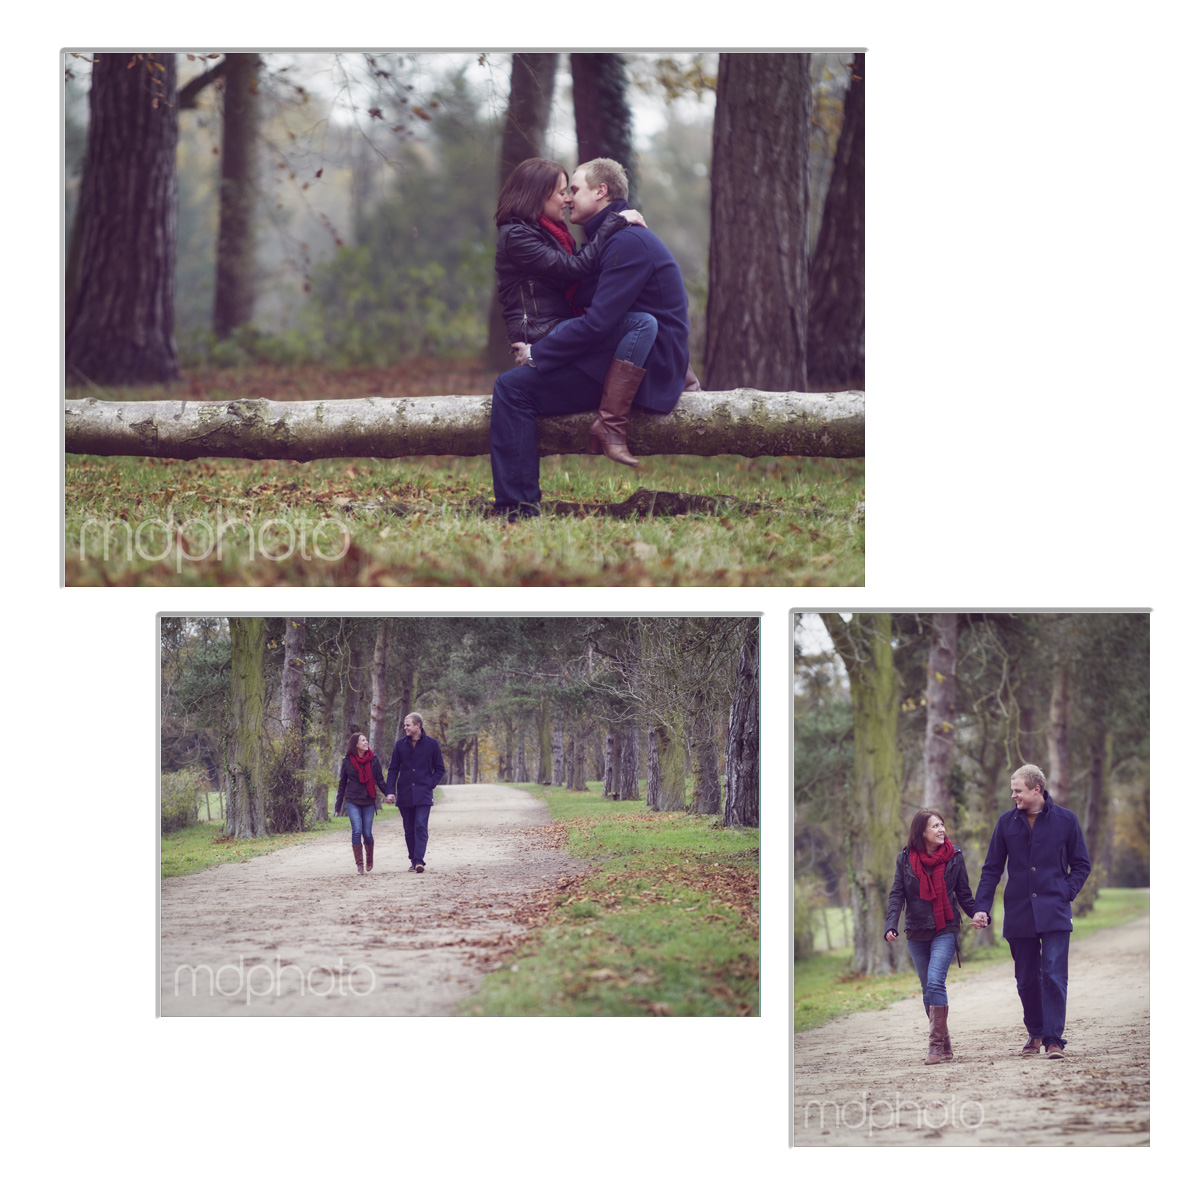 Stowe_Park_Engagement_Photo_Shoot_Ingleby_Barwick_Yarm_Wedding_mdphoto_1